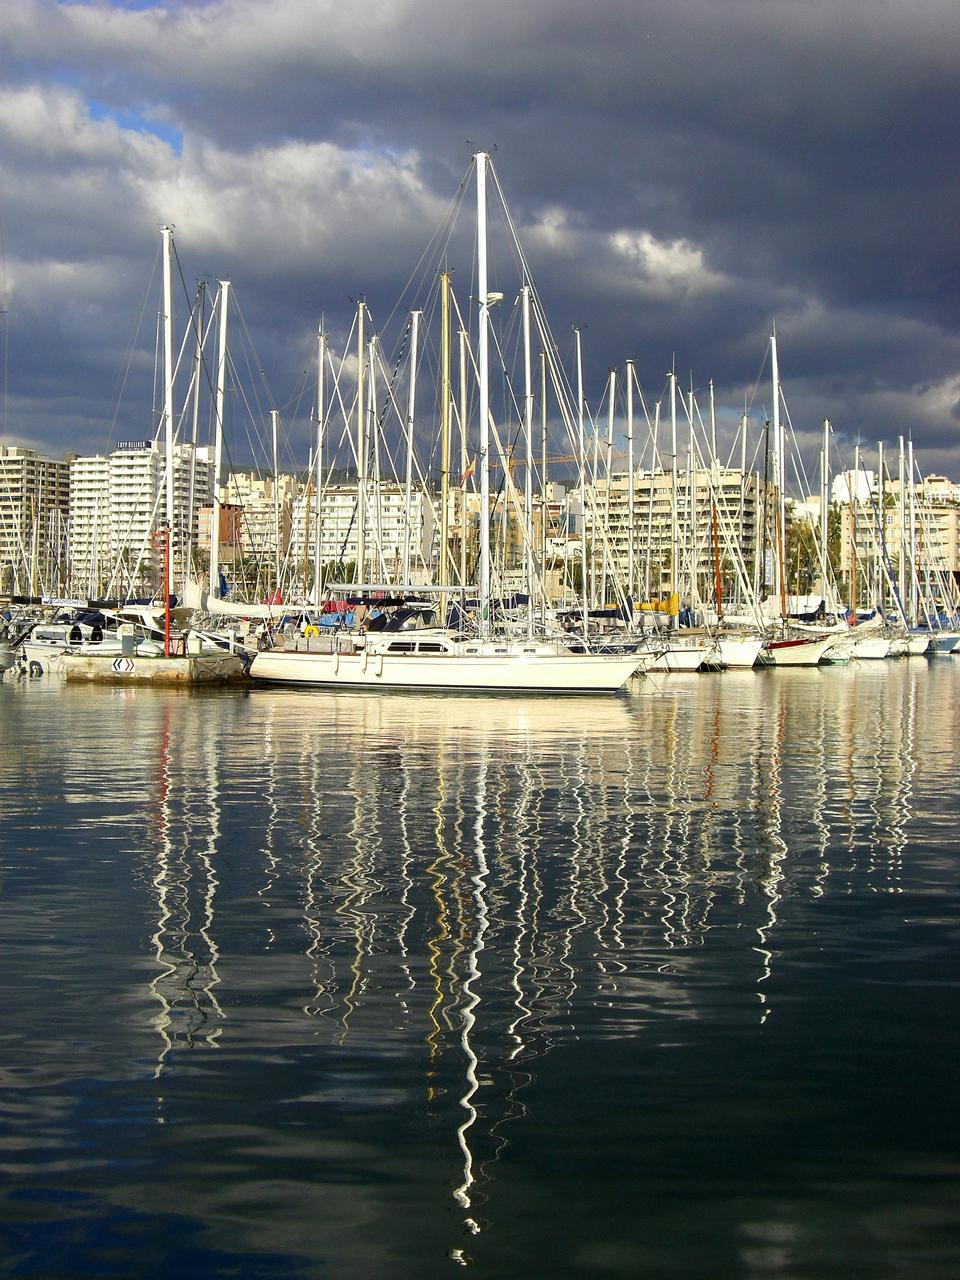 Marina in Palma de Mallorca city